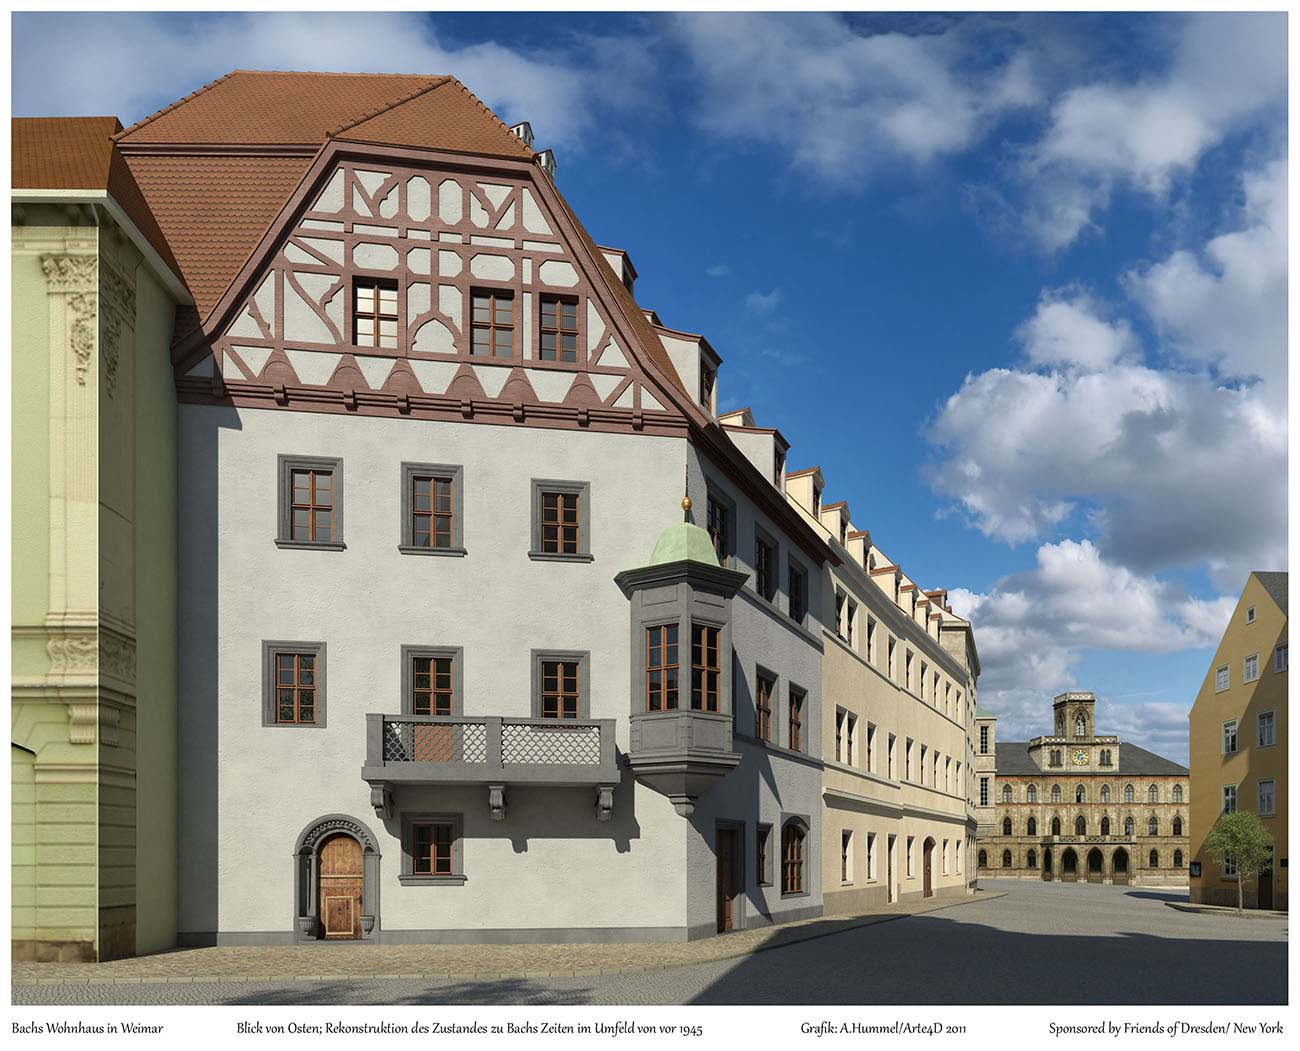 A reconstruction of the Bach familiy house in Weimar as it may have looked in his lifetime (view from the east). Don't try to look for the house on a visit to the city, because it is now... a parking lot. Visualisation done by the Hummel architecture office in 2011.